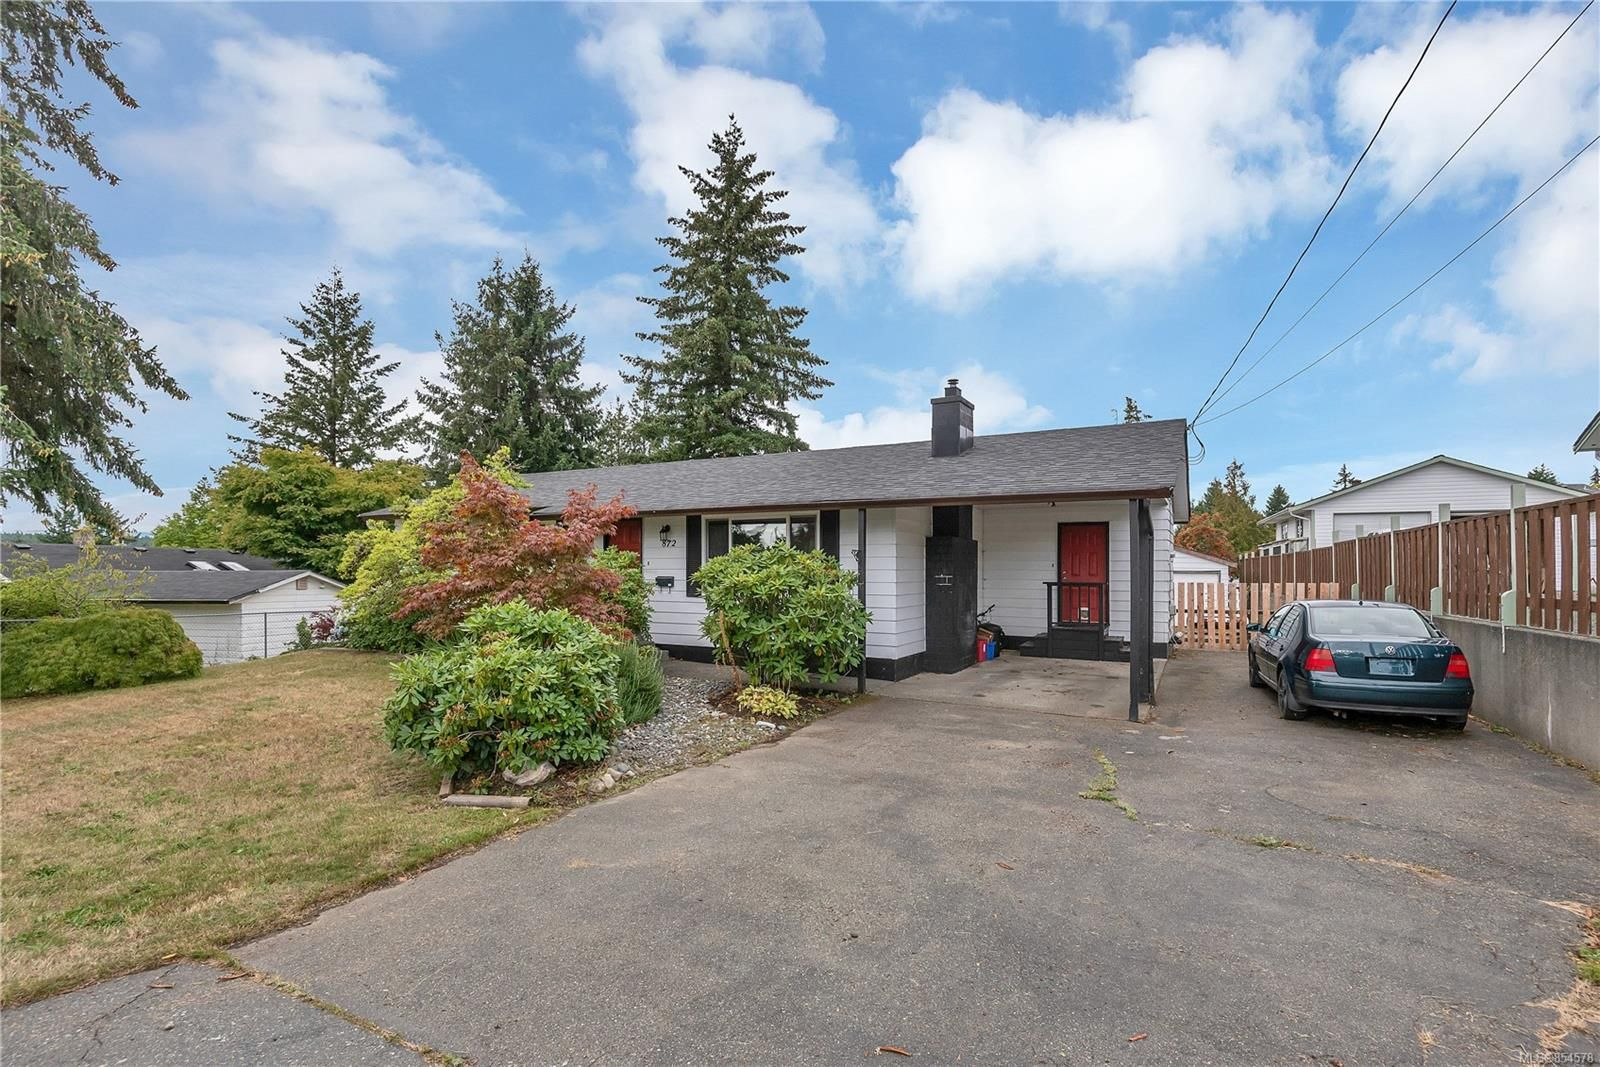 Main Photo: 872 Somerset St in : CR Campbell River Central House for sale (Campbell River)  : MLS®# 854578